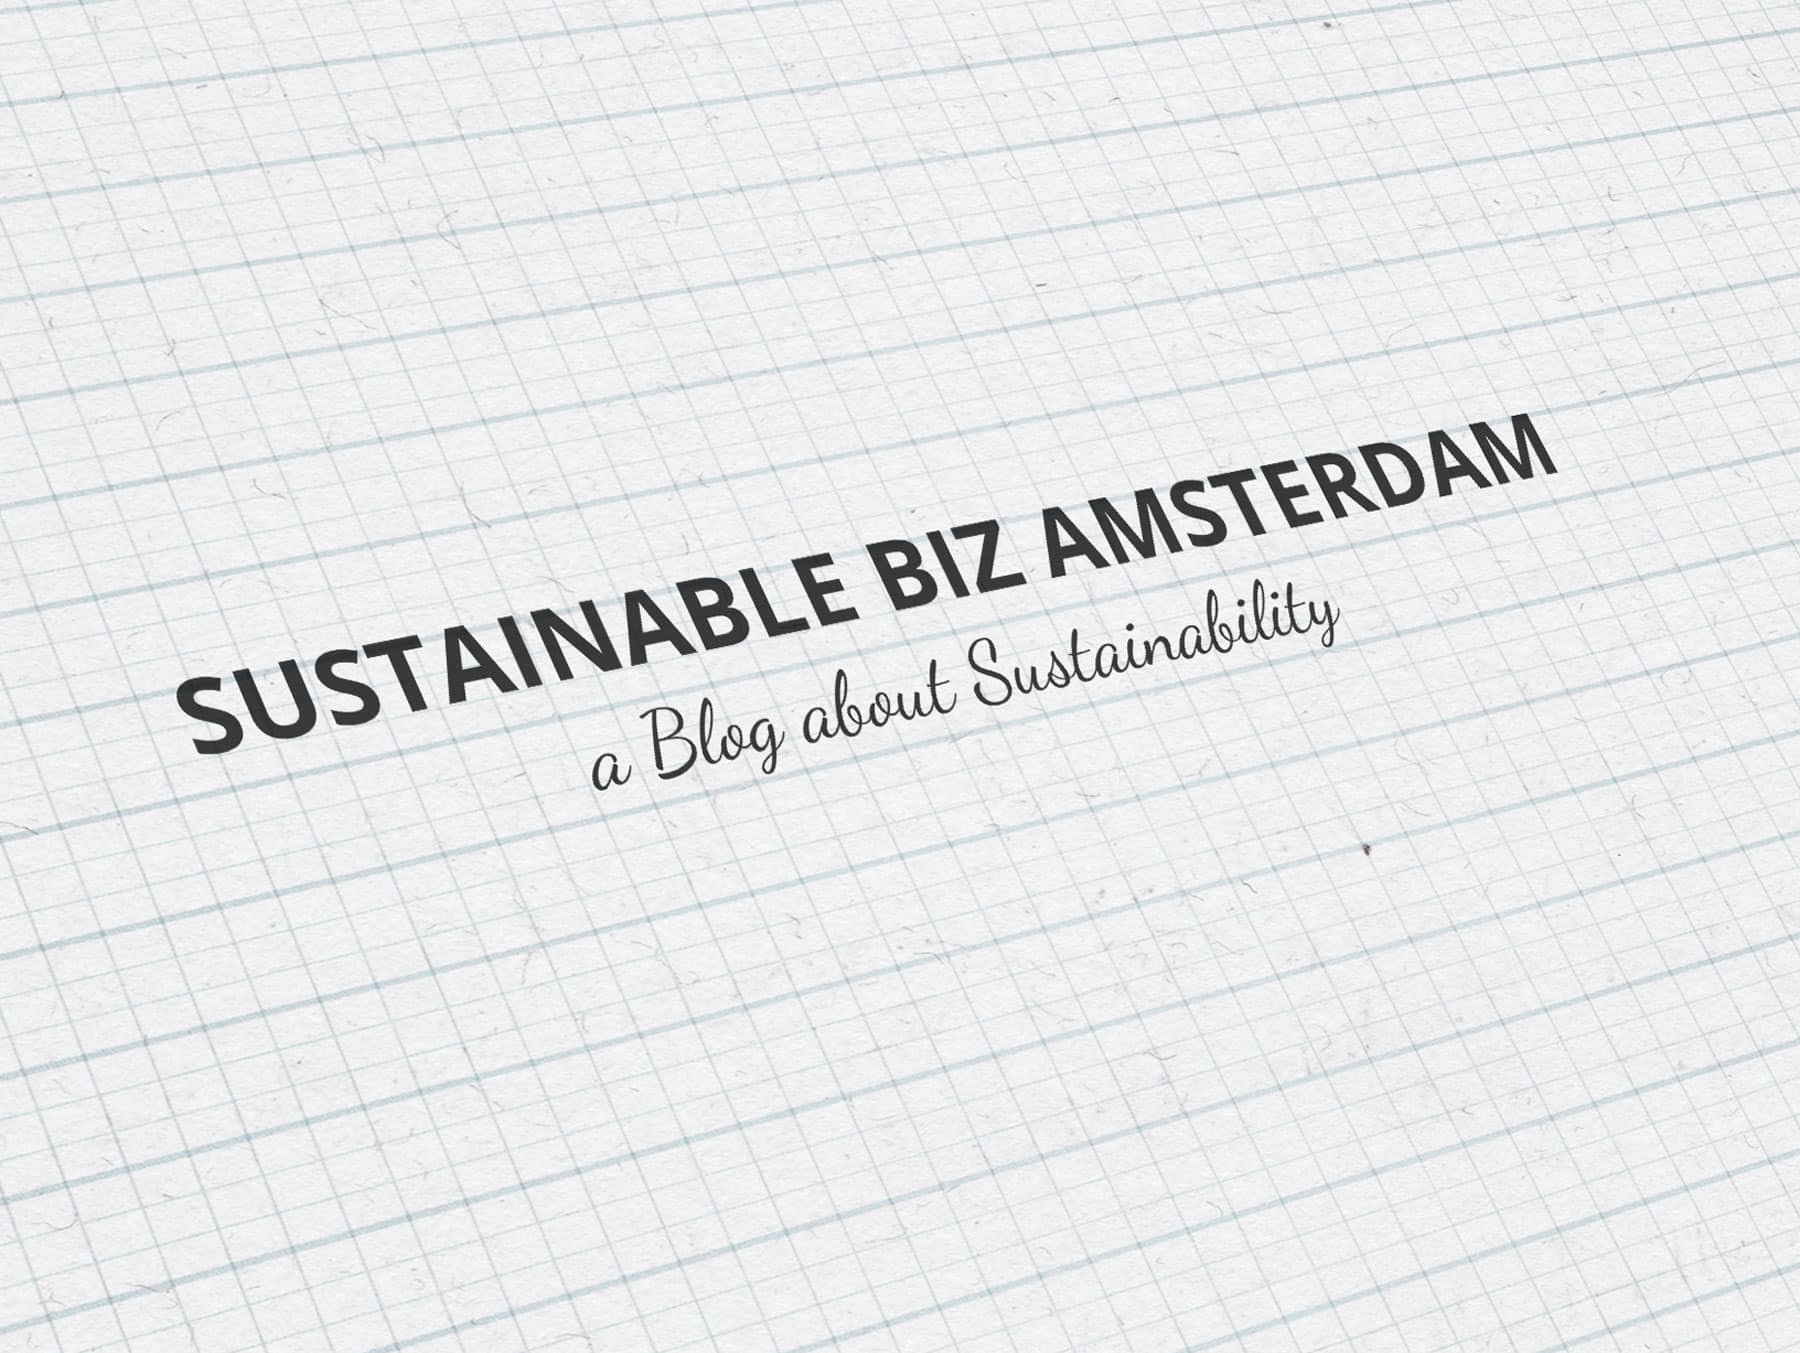 Sustainable Biz Amsterdam